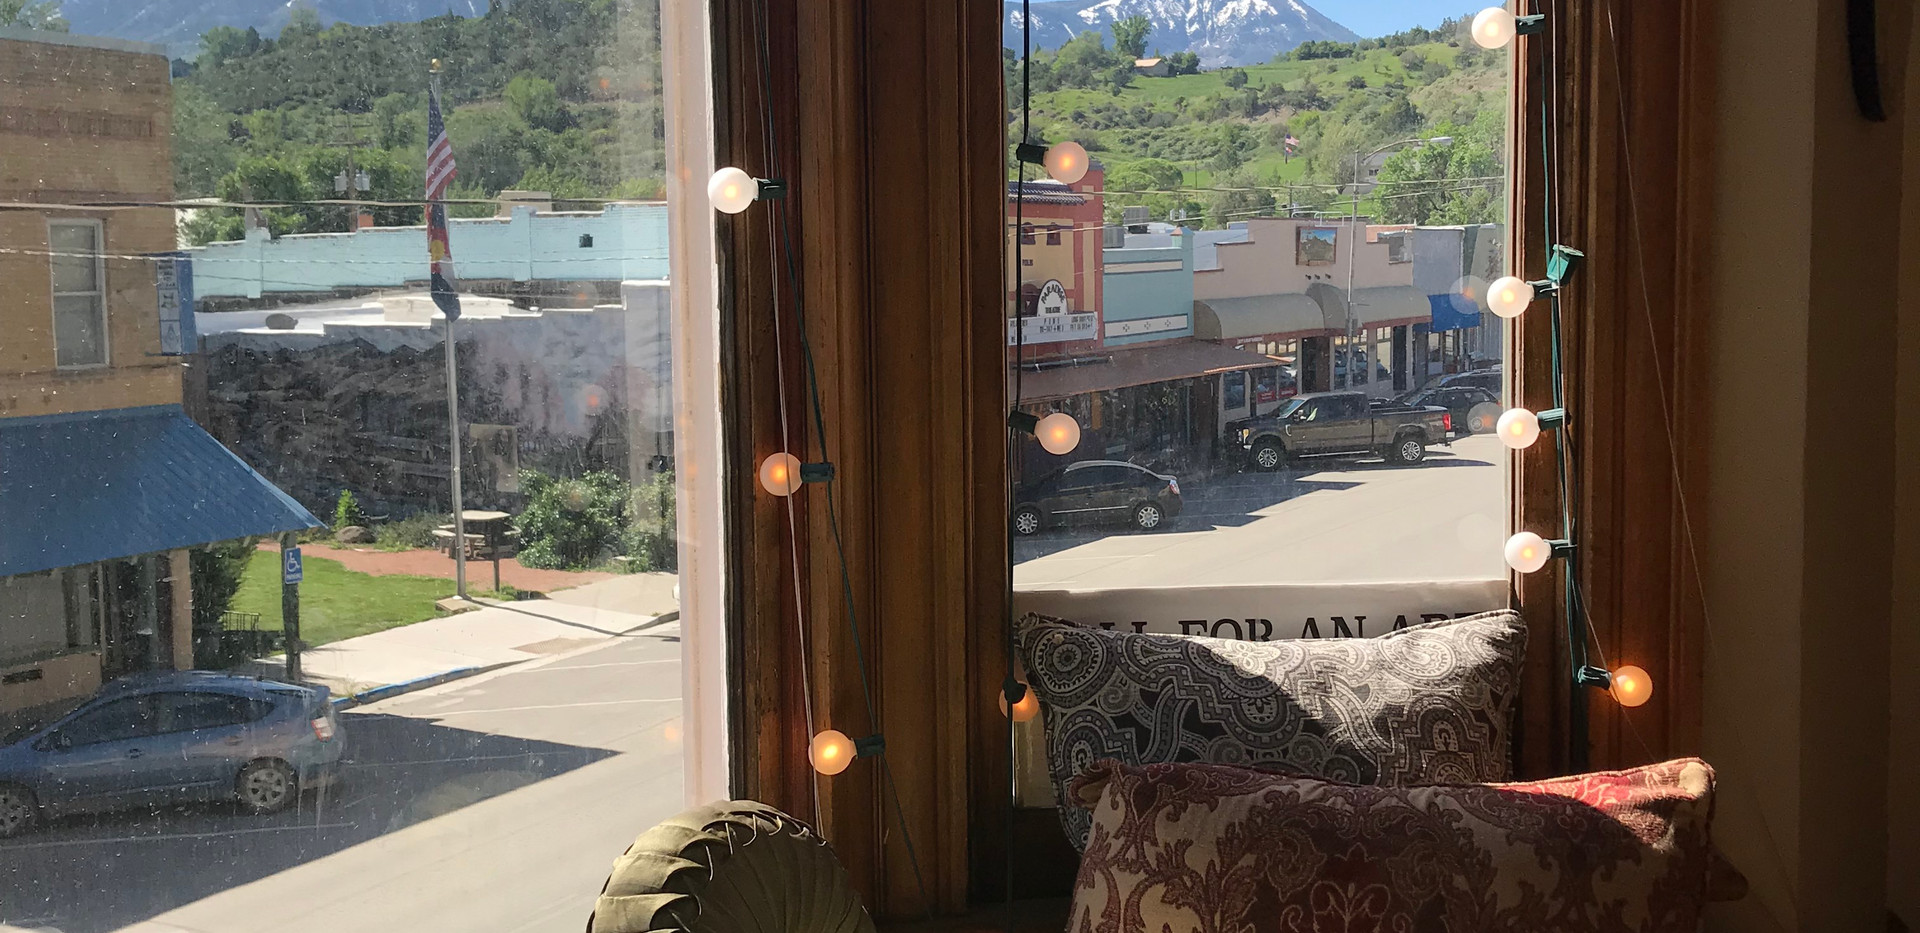 Second Story Studios, Paonia, Colorado